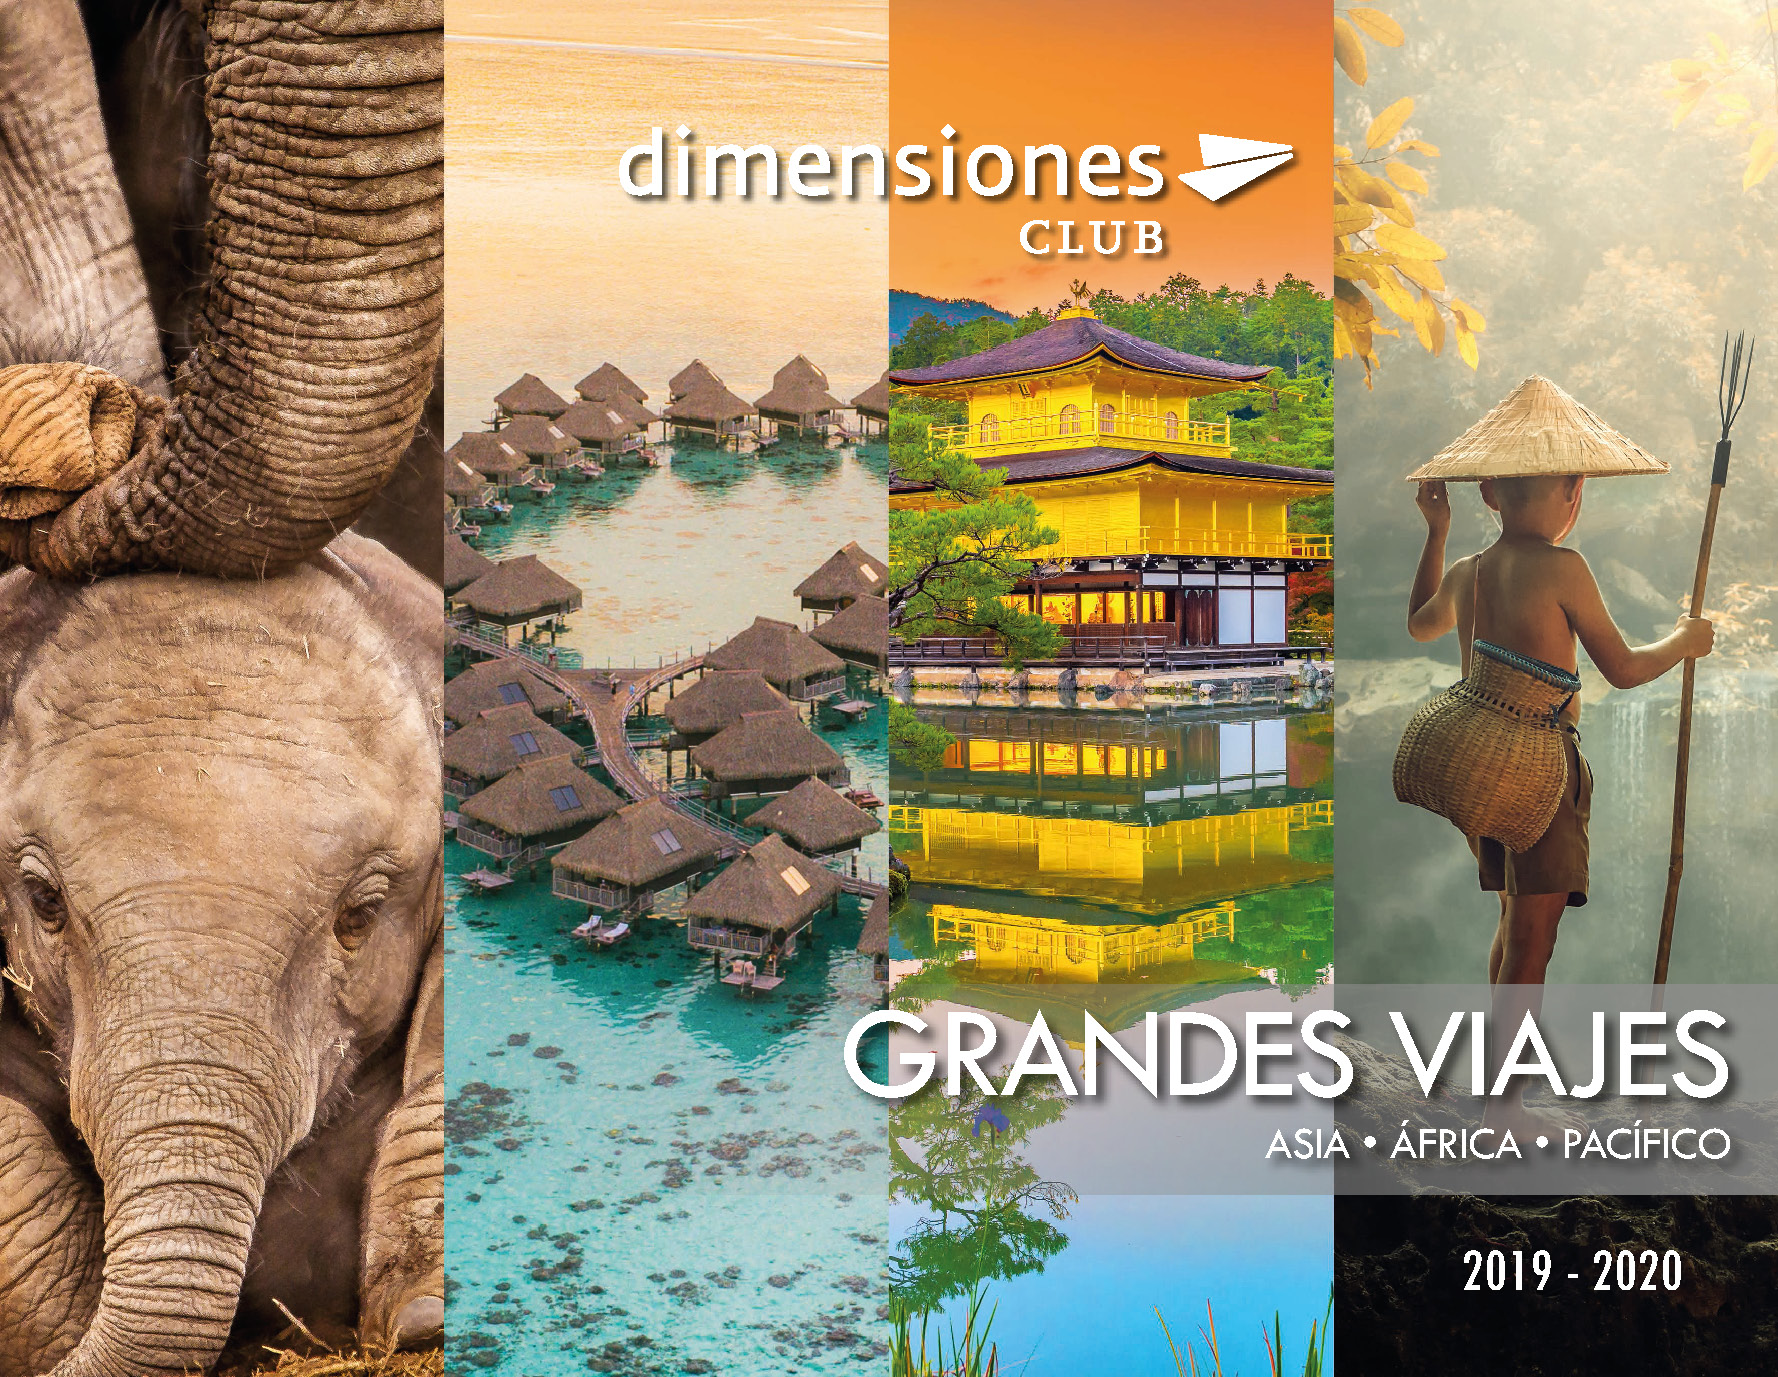 Catalogo Dimensiones Club Asia Africa Pacifico 2019